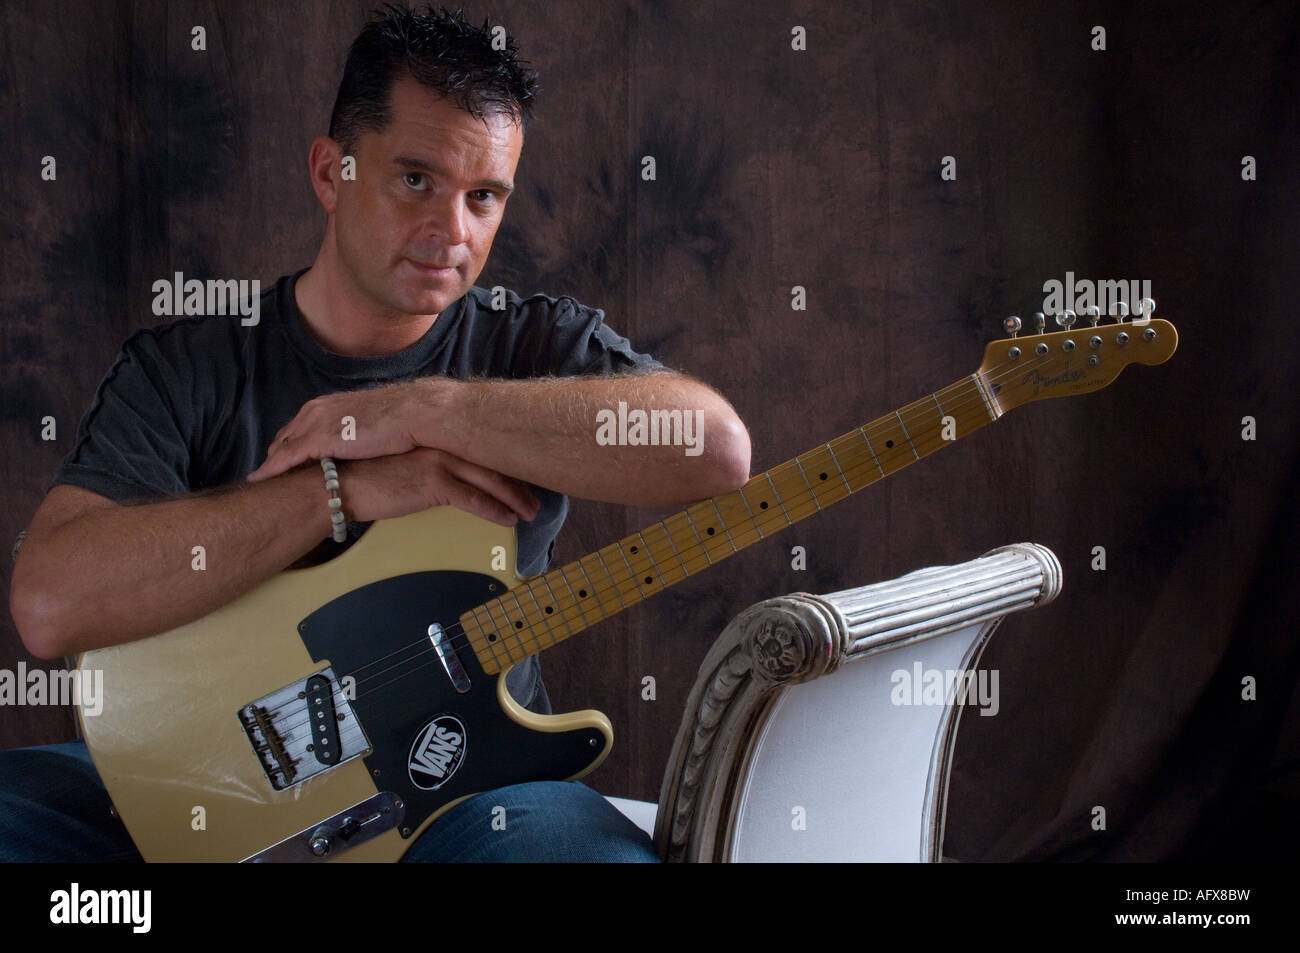 40 year old male musician holding iconic blonde fender telecaster ...